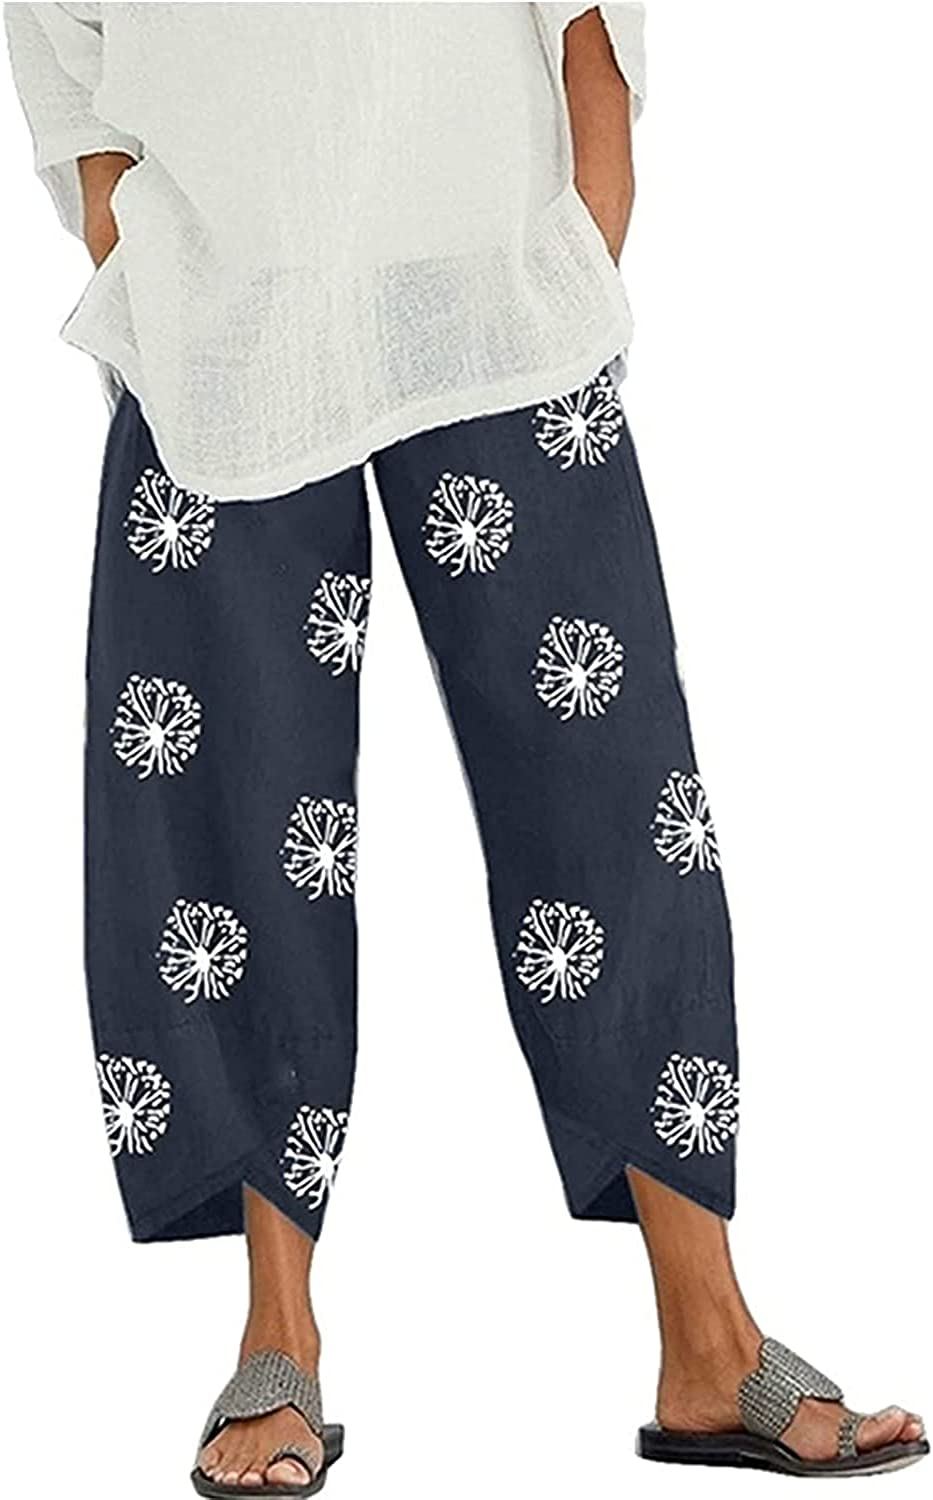 GADSUVI Summer Very popular Pants for Women Linen Fashionable Cotton Casual Pockets Wide